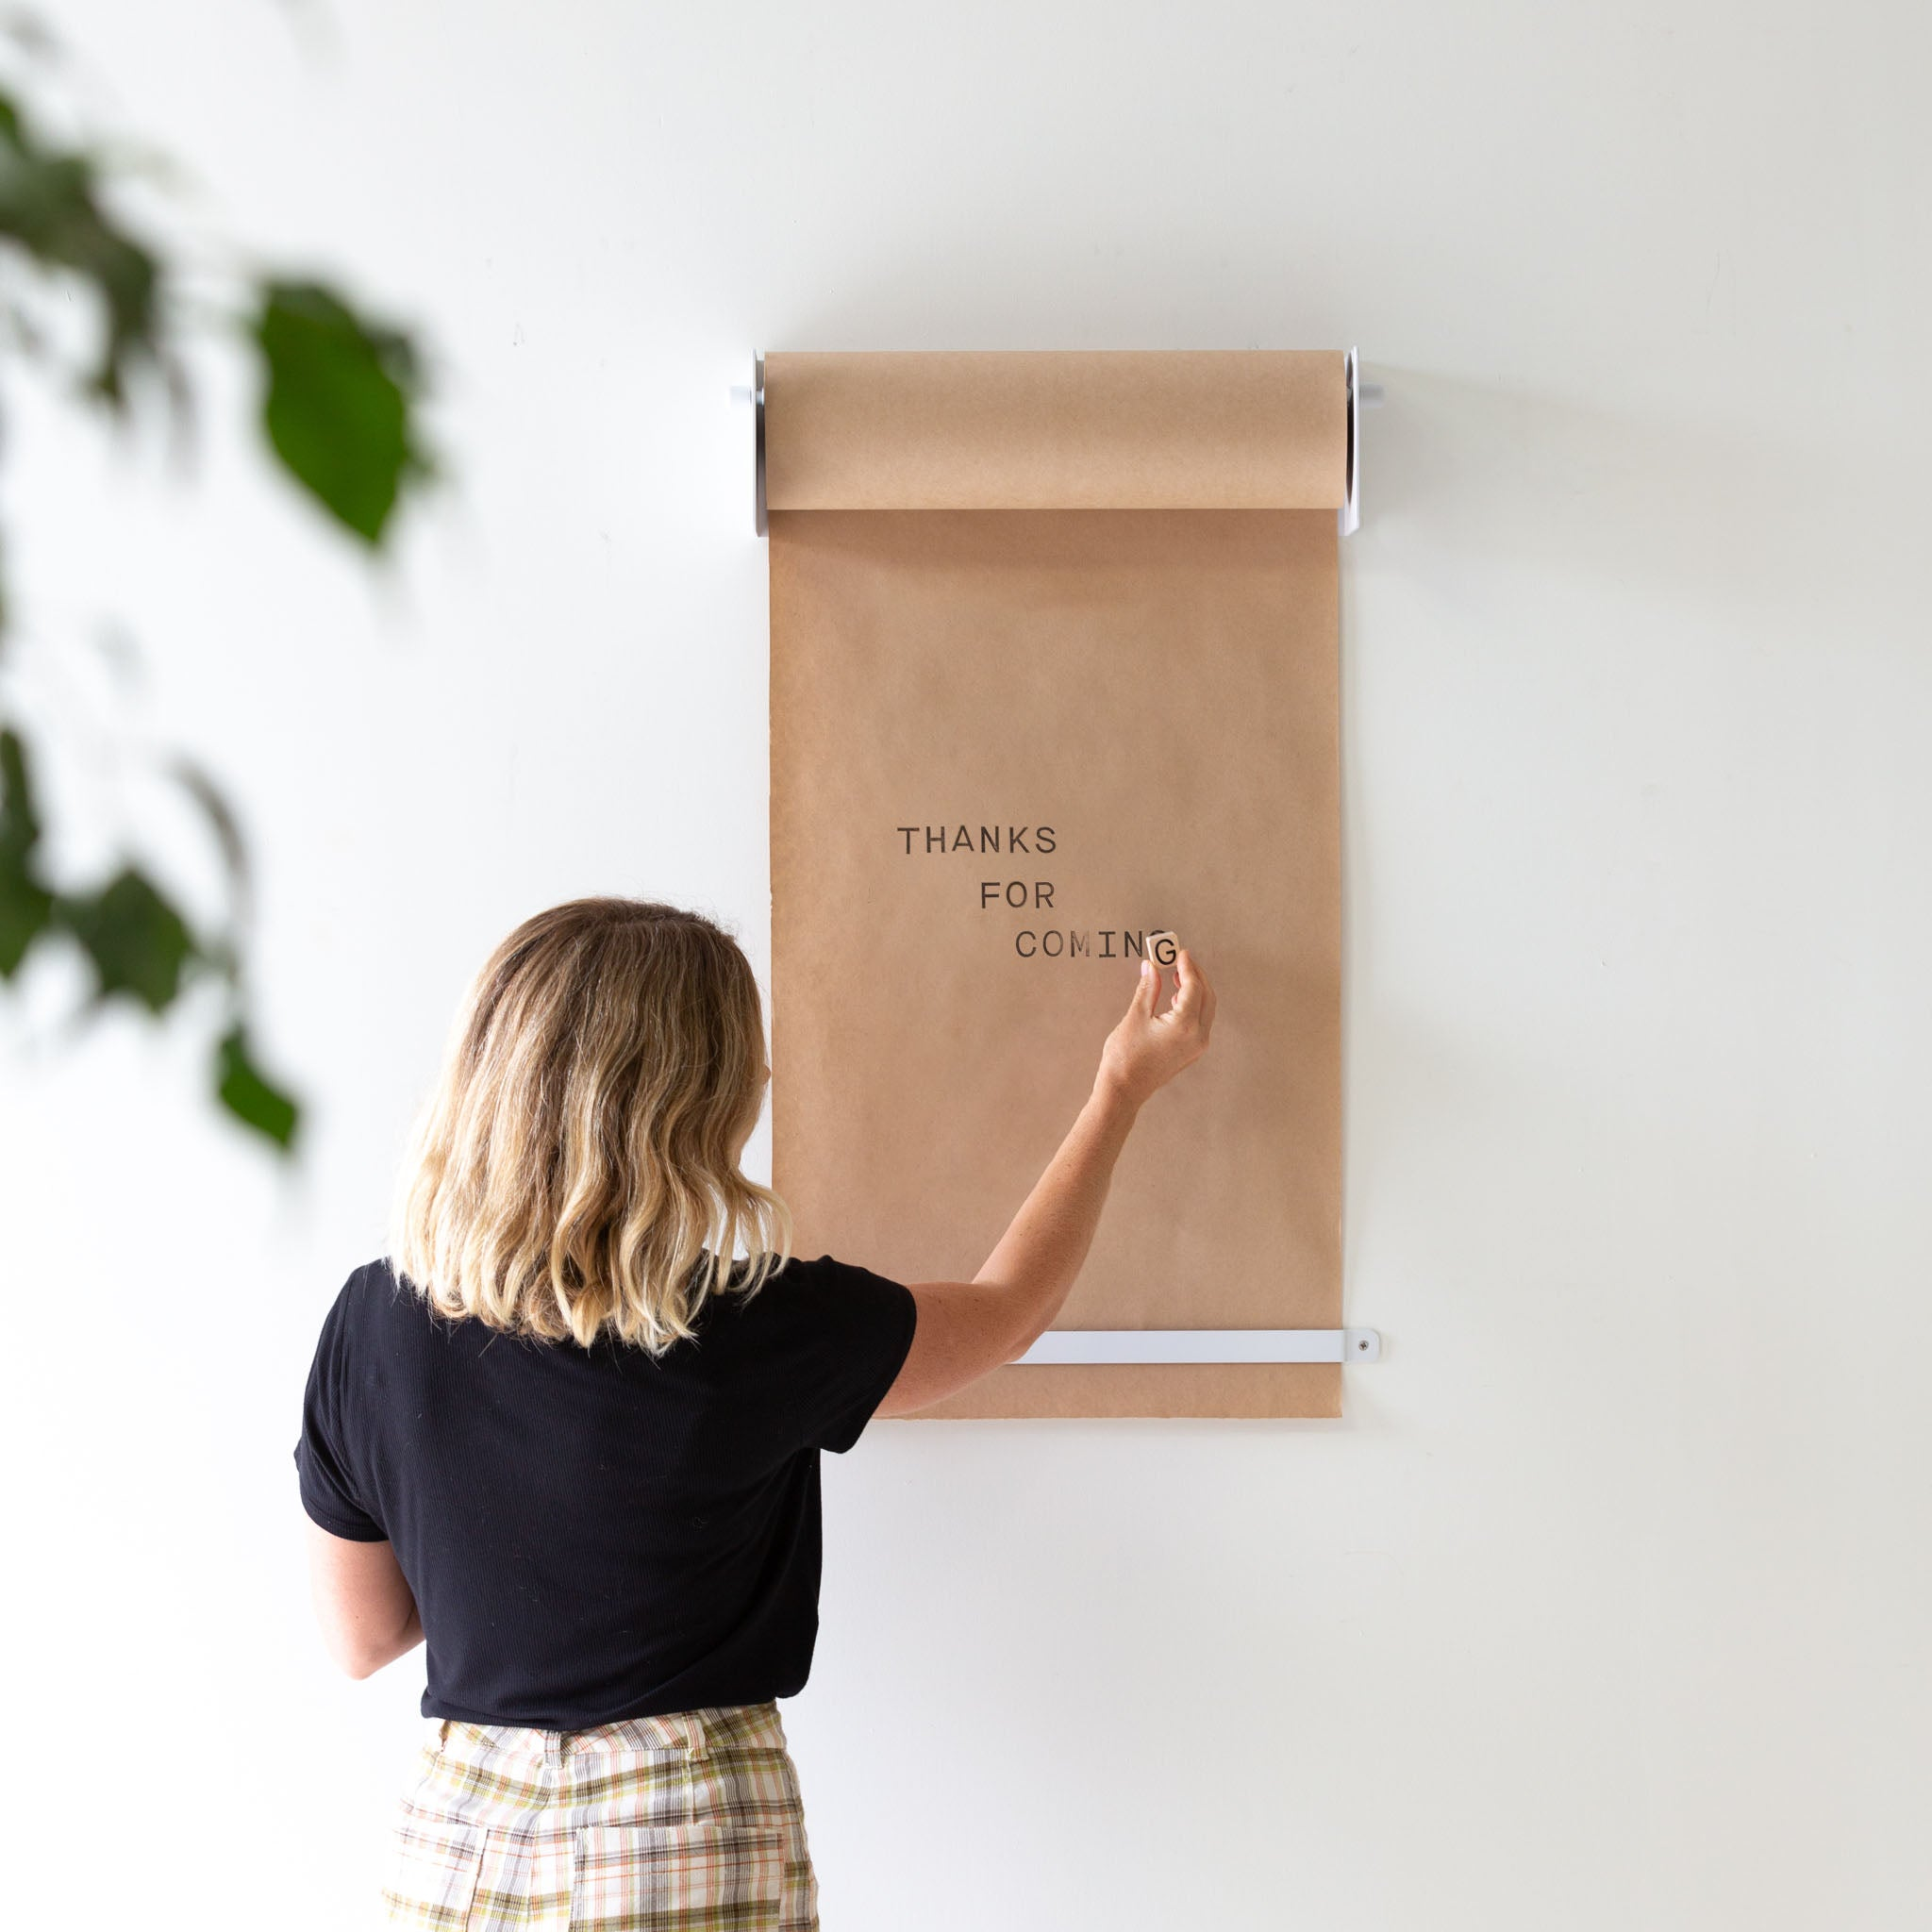 THE STUDIO ROLLER - WALL-MOUNTED KRAFT PAPER HOLDER